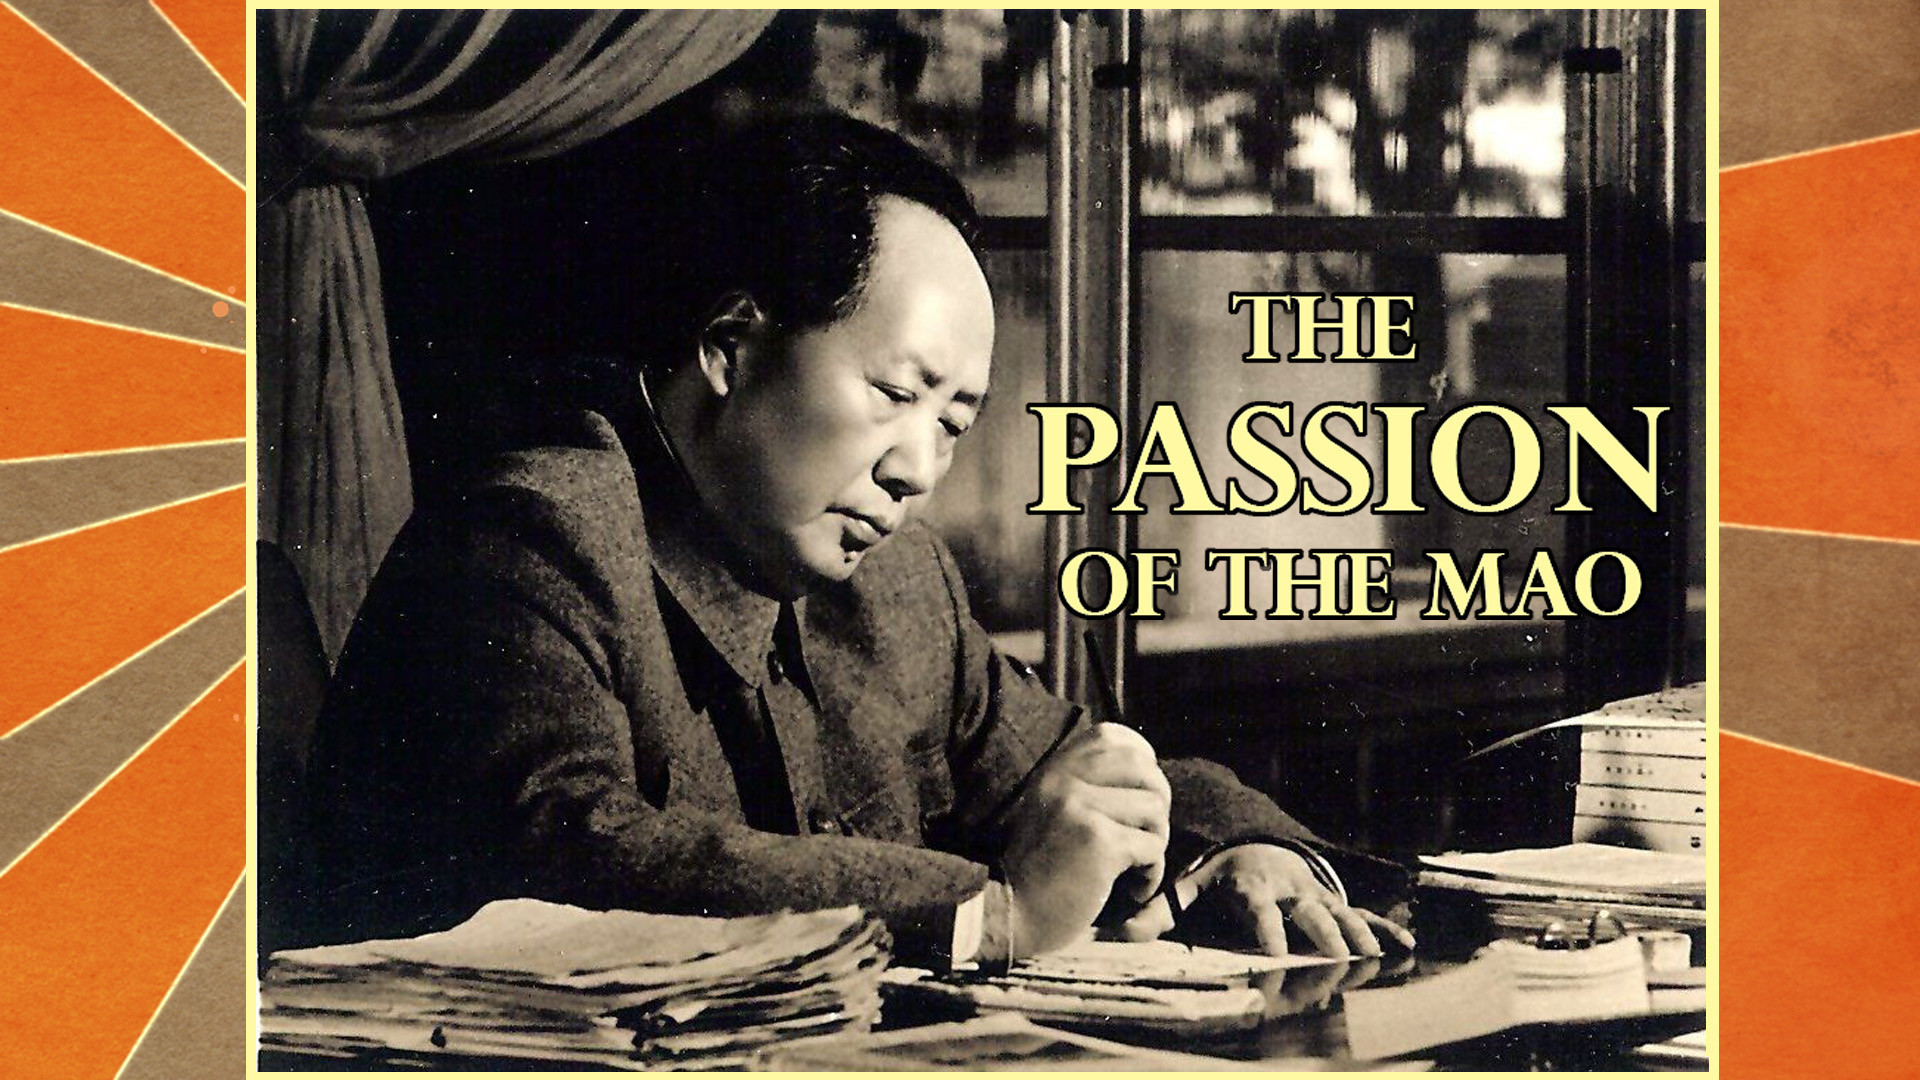 to what extent was mao's rise My topic is mao and his rise to power the specific research questions is to what extent did social and political conditions lead to mao's rise to power i will specifically look into the conditions in chiang kai shek's regime which led to the rise of mao.